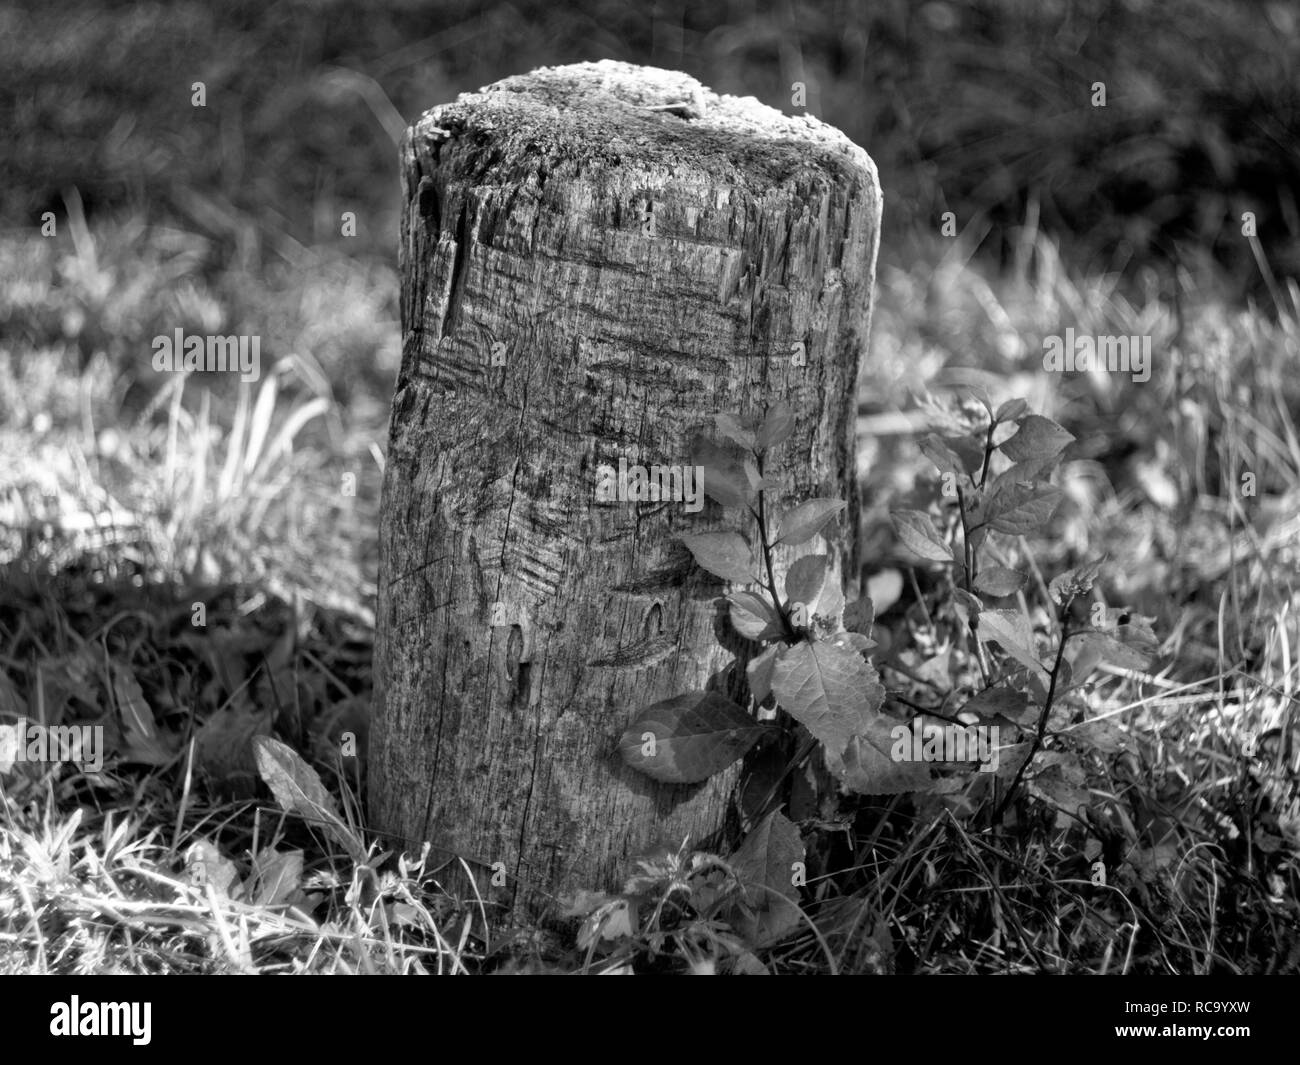 stump for chopping wood in the garden, black and white photo - Stock Image